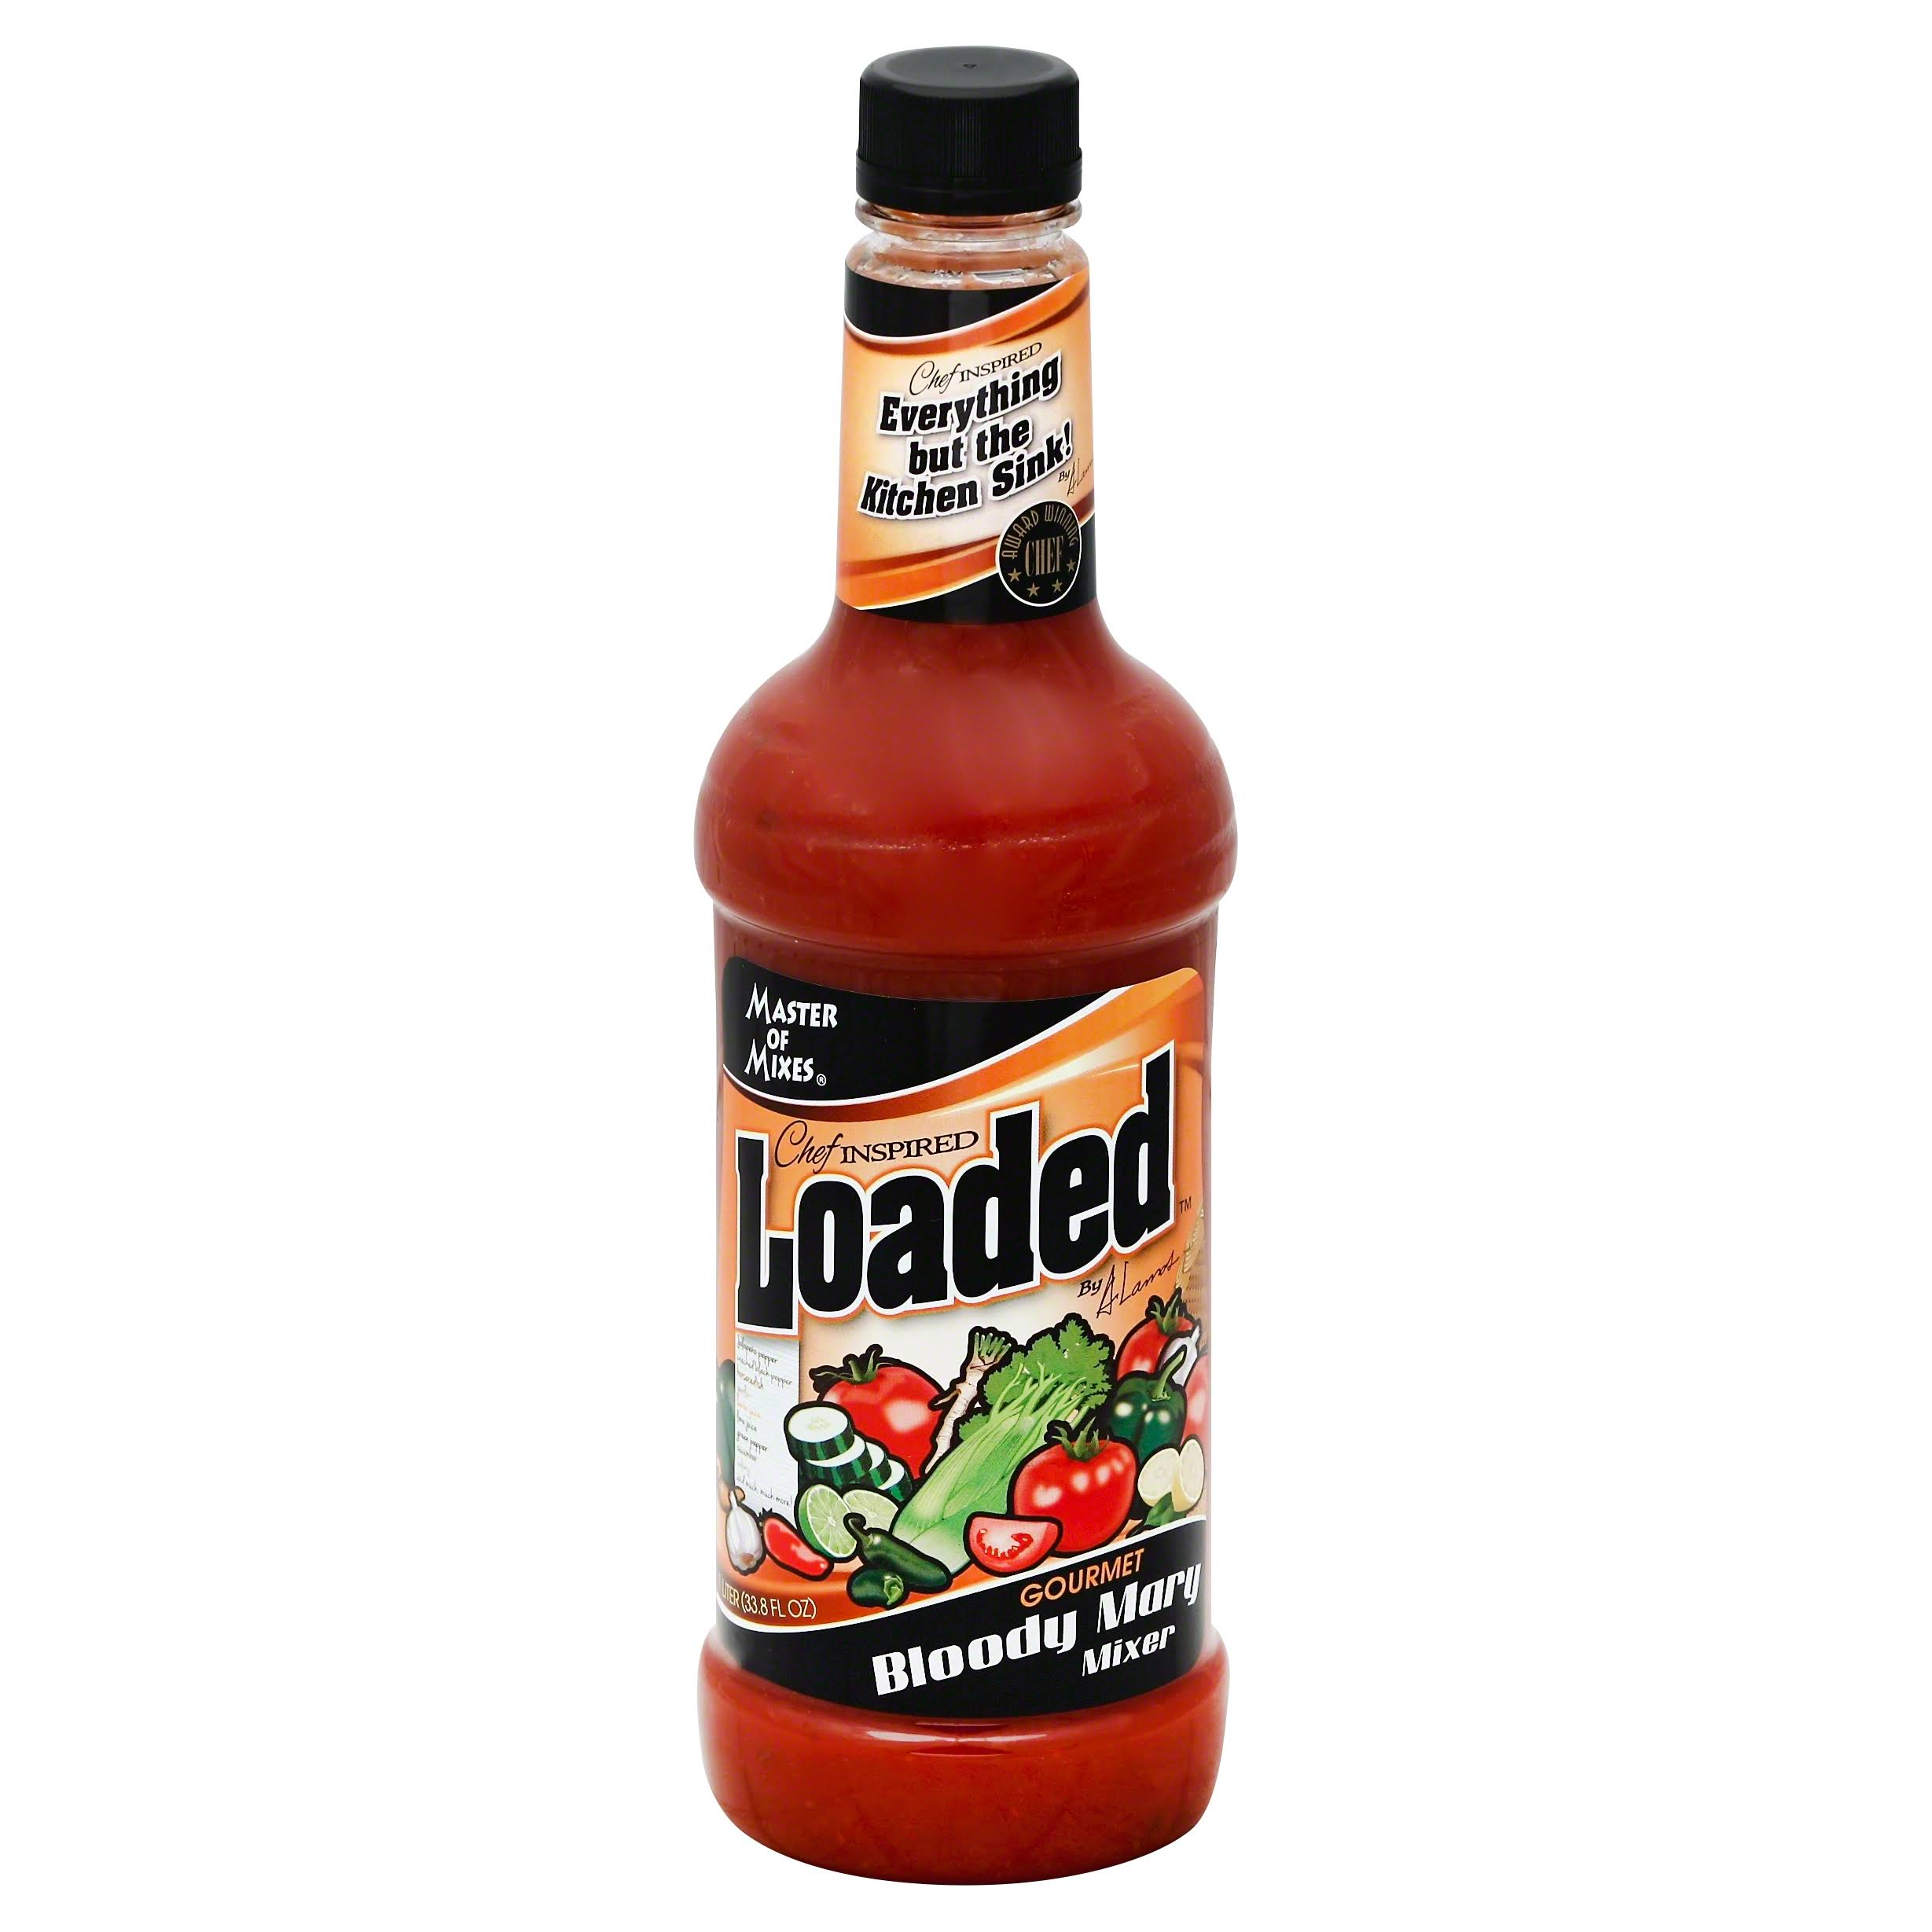 Master Of Mixes Loaded Mixer, Gourmet, Bloody Mary - 33.8 fl oz